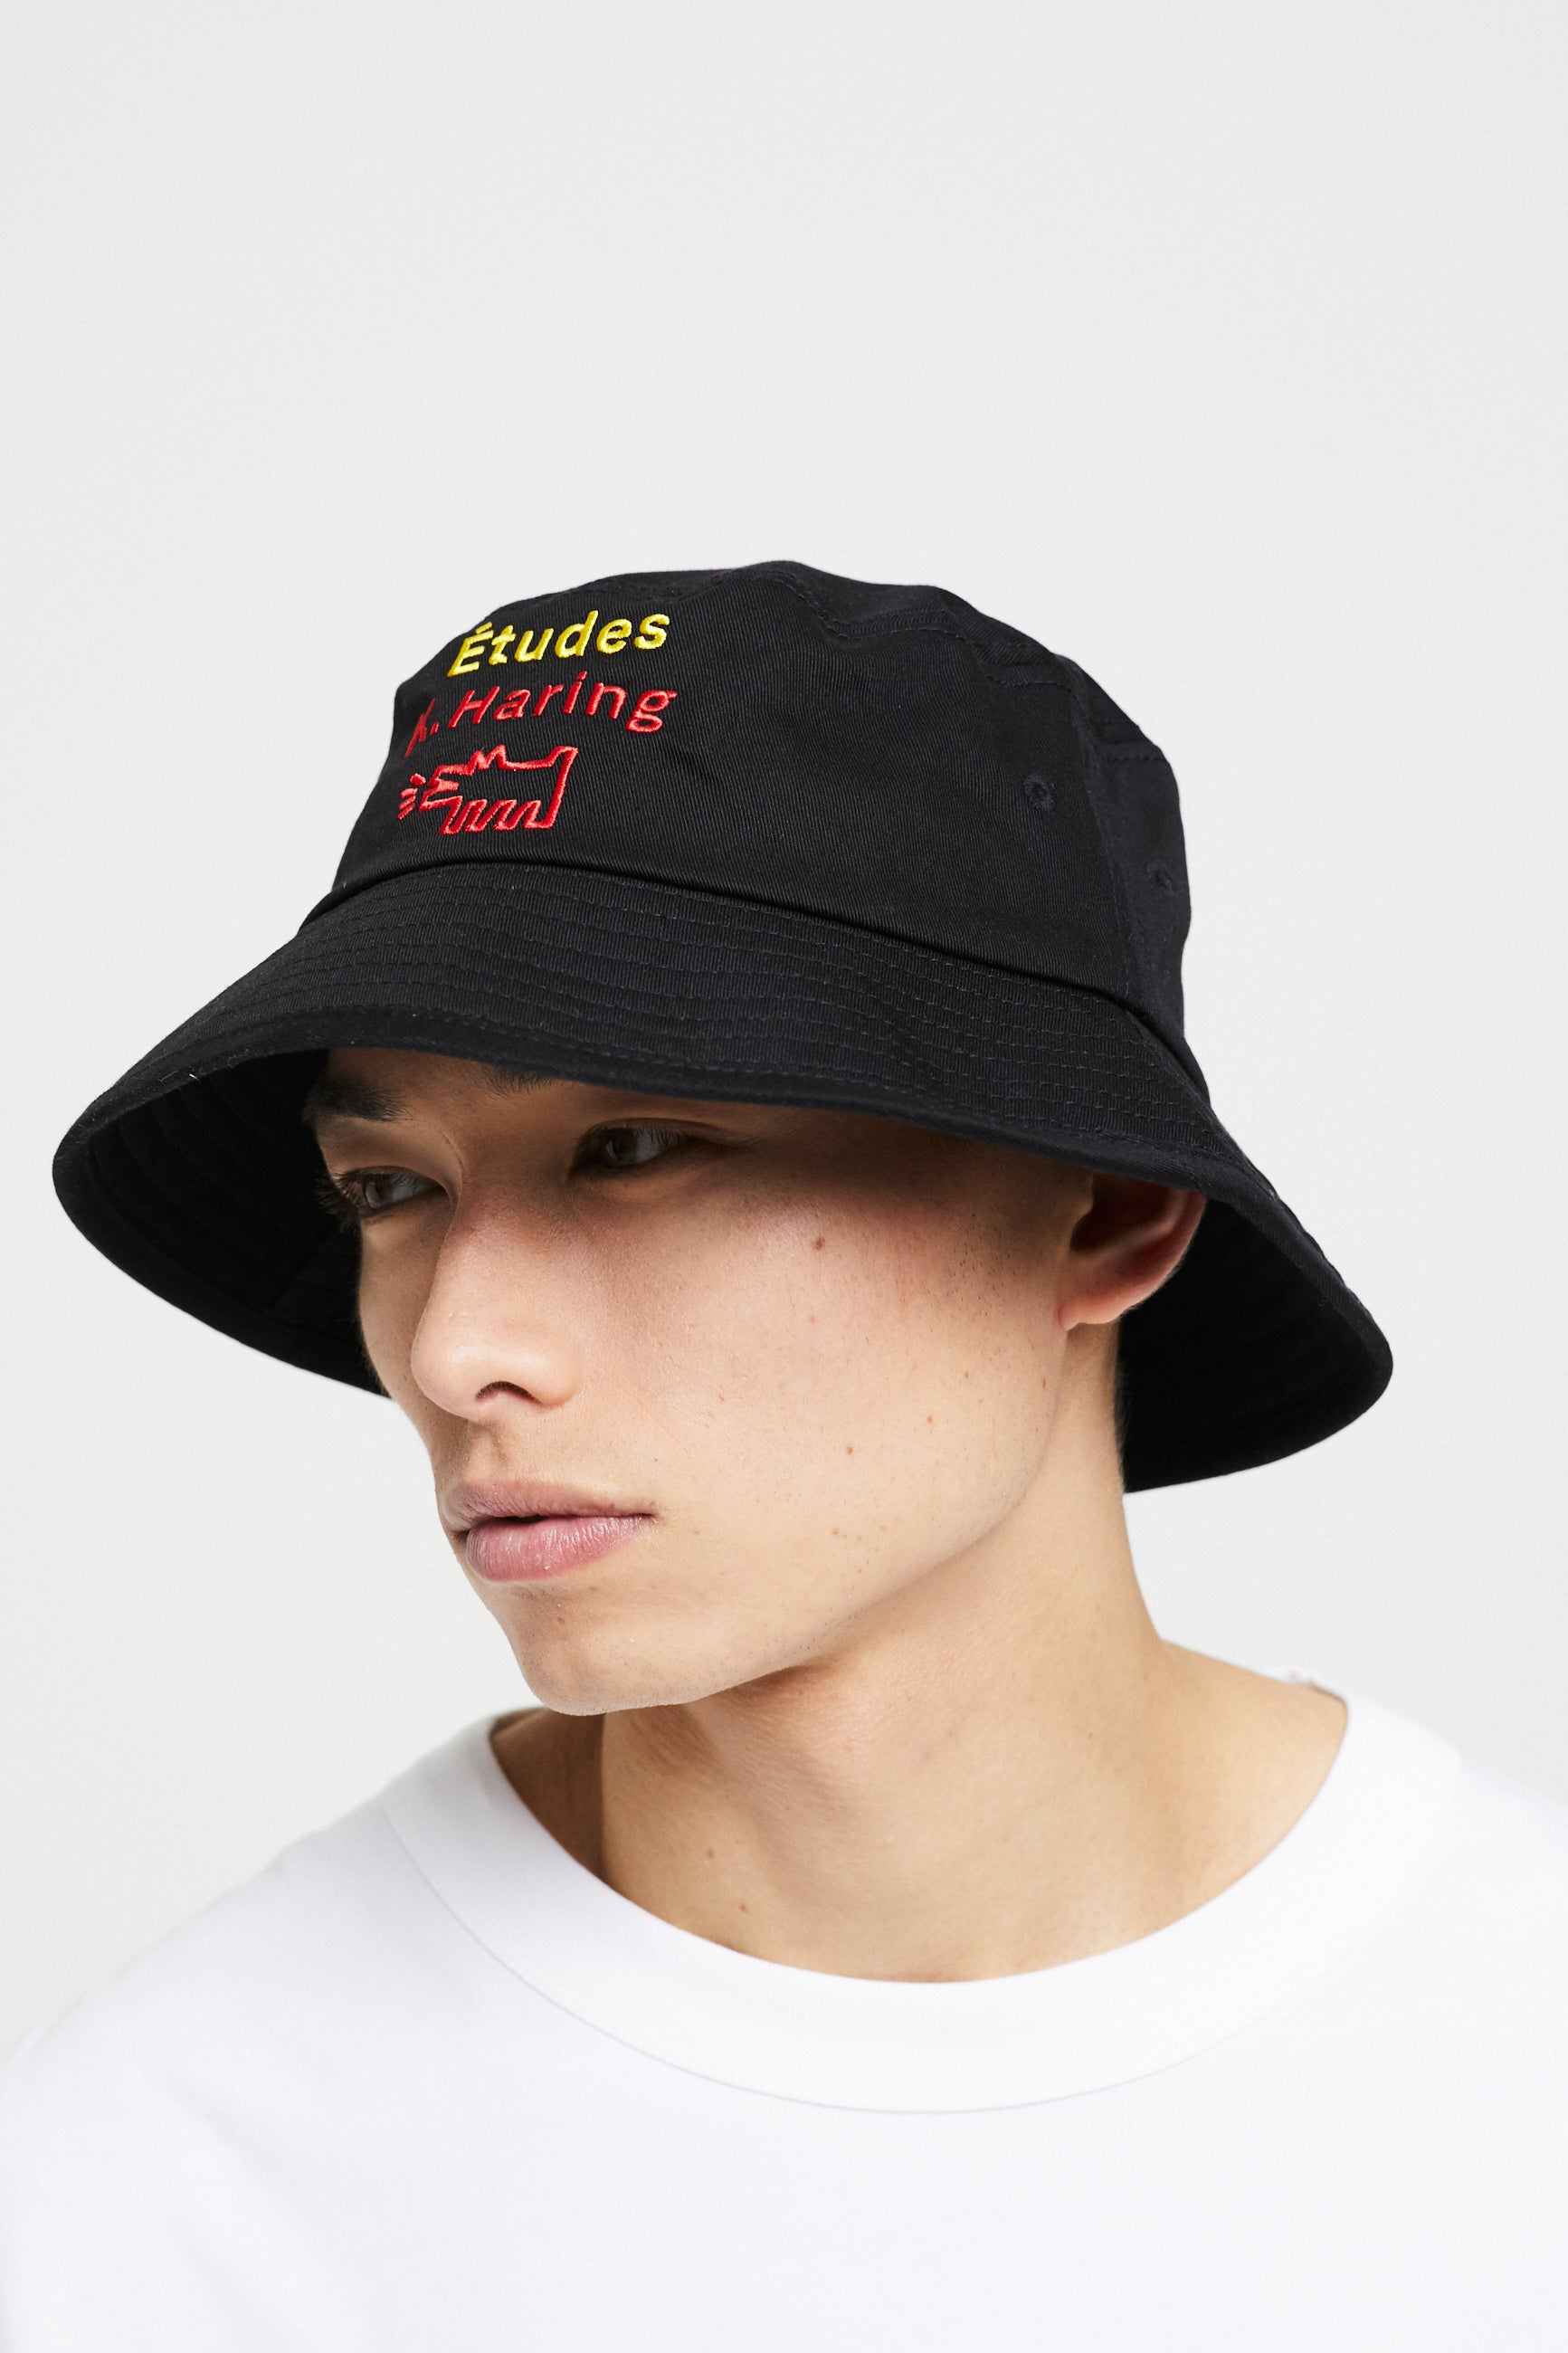 Études Training Hat Keith Haring Black 2